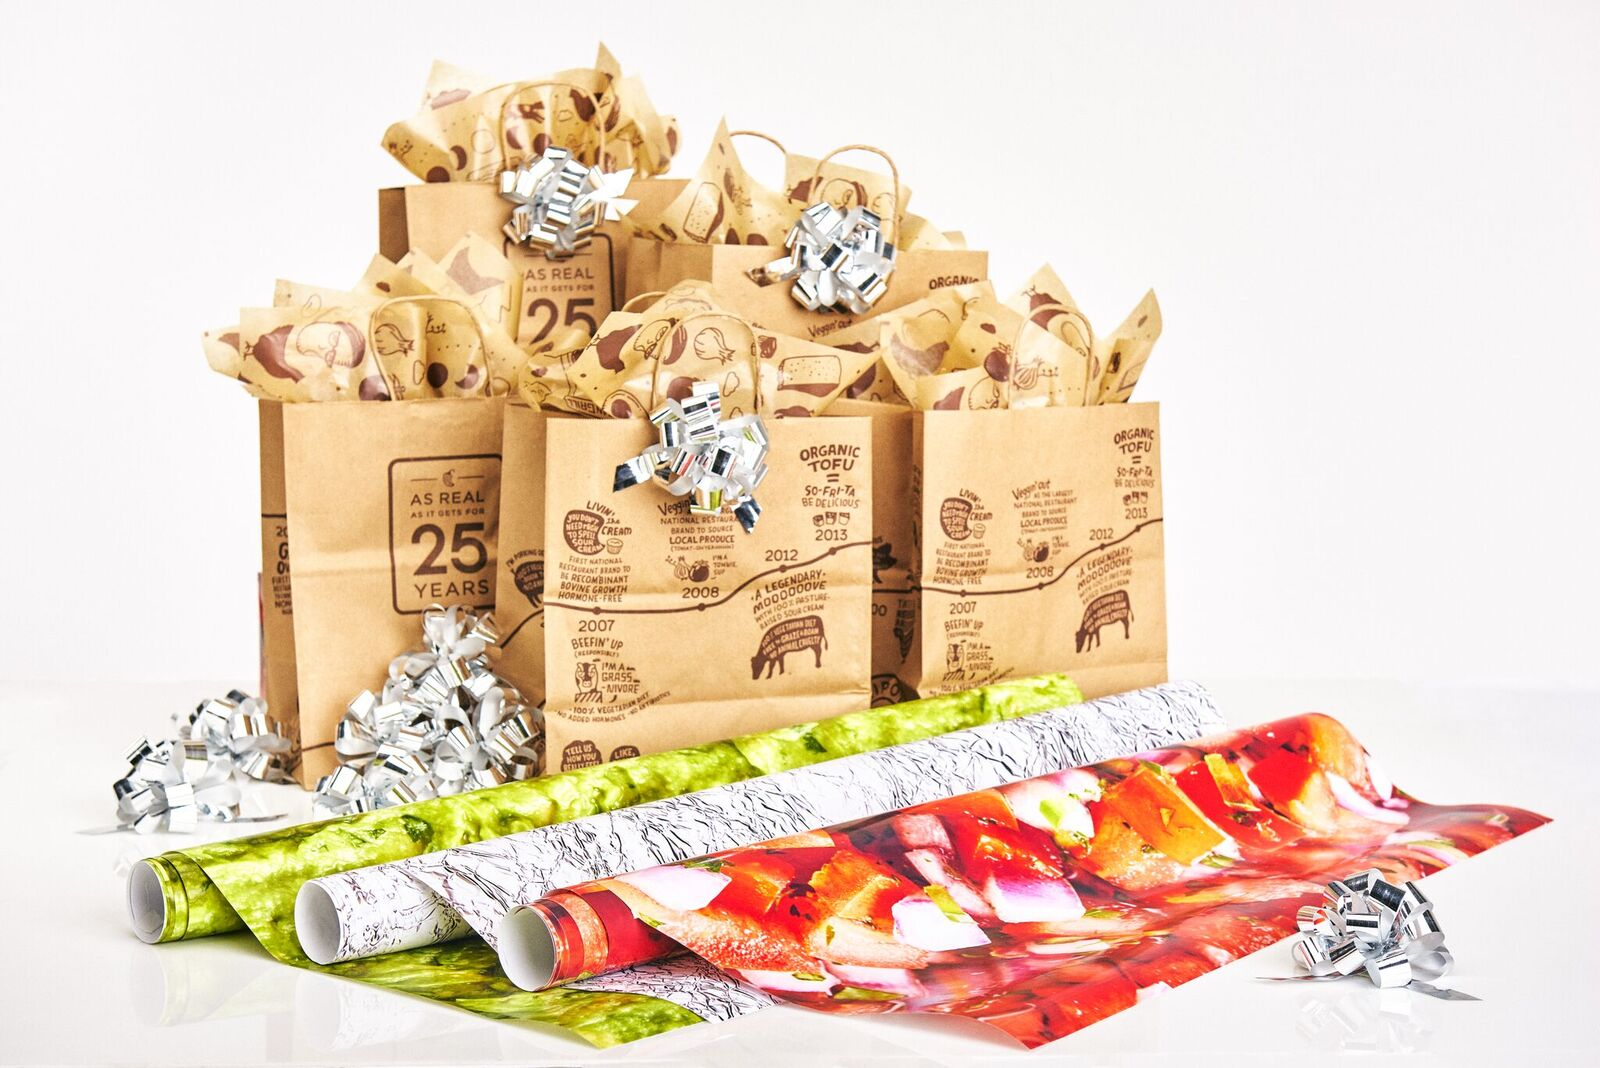 Chipotle Is Selling Guacamole, Salsa, and Burrito-Inspired Wrapping Paper for the Holidays